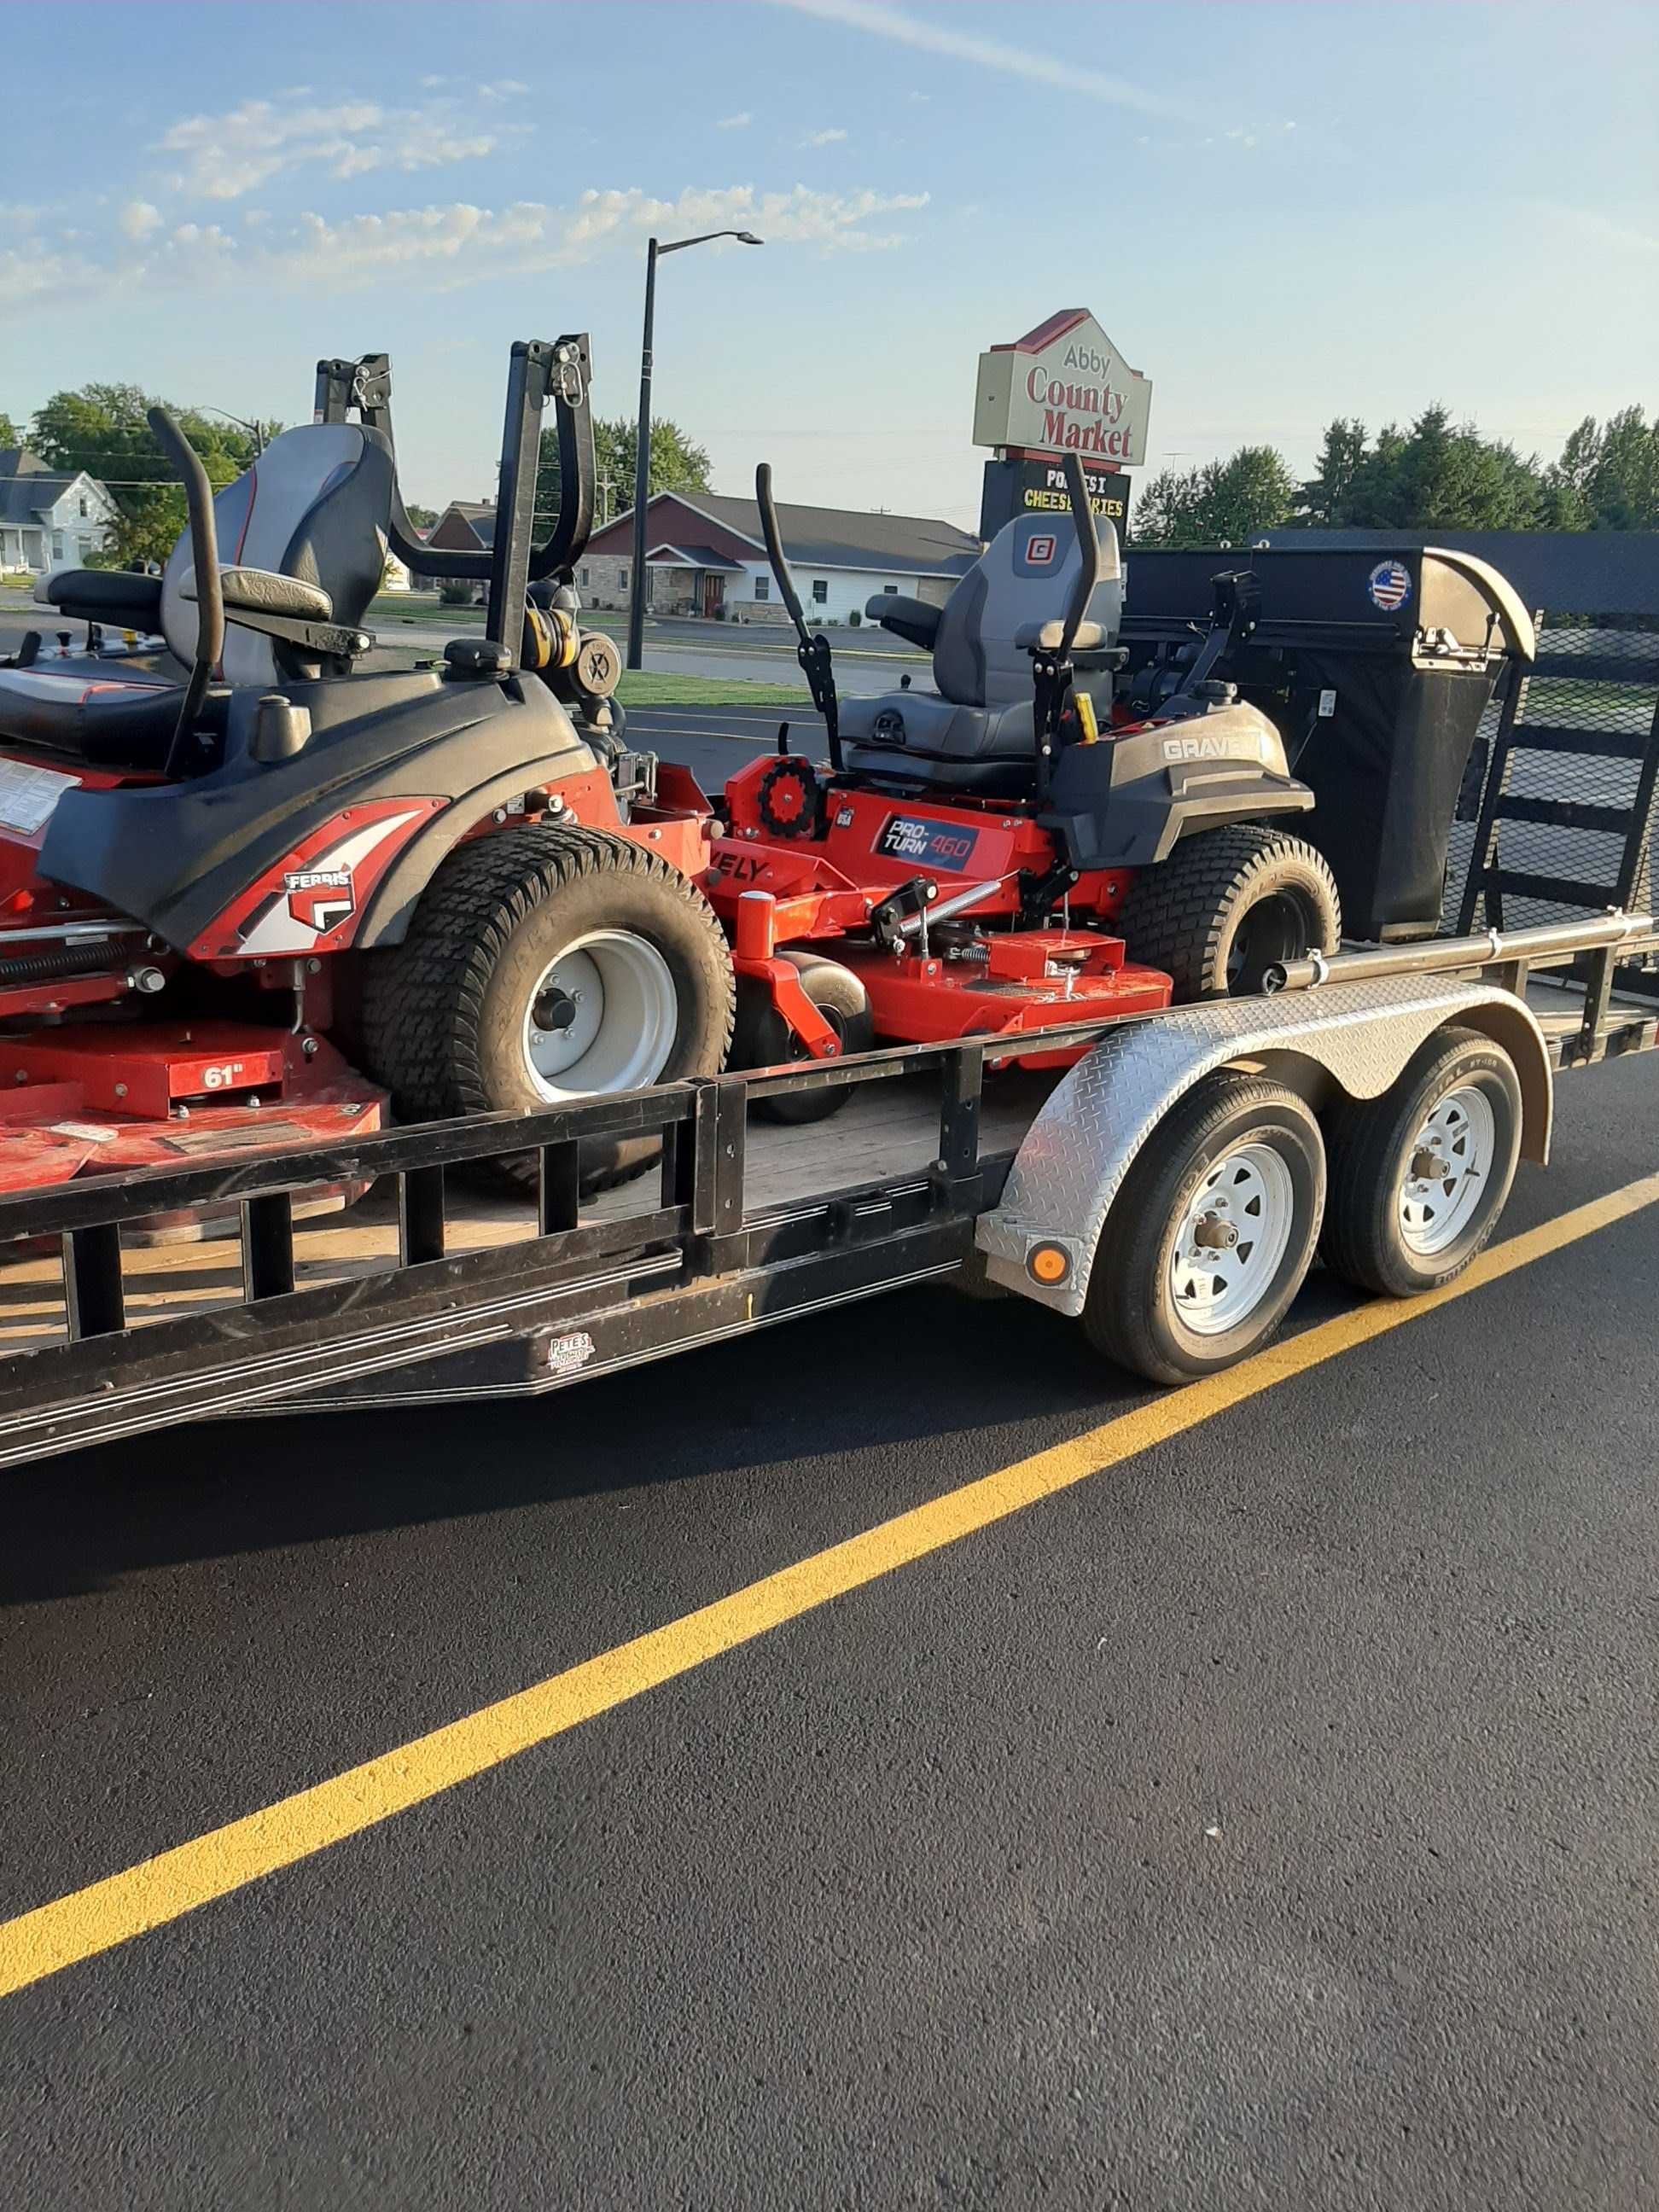 Closeup of Advanced Lawn Care trailer with mowing equipment